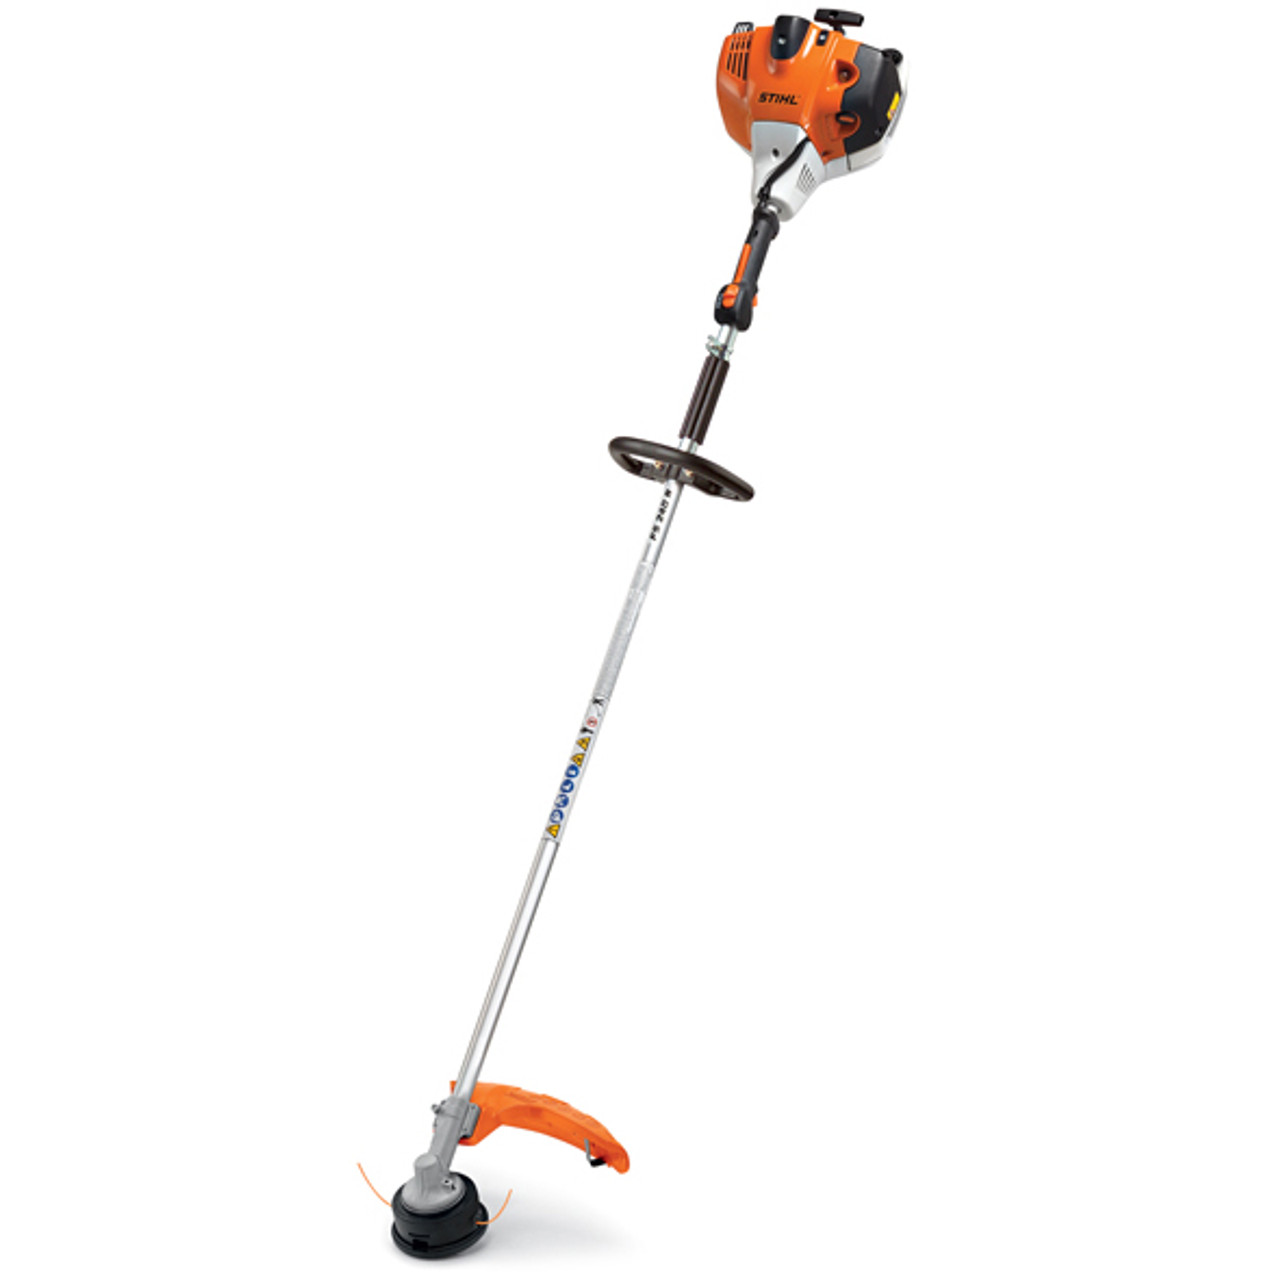 STIHL FS 240 R 37.7cc Commercial Trimmer Straight Solid Shaft Image